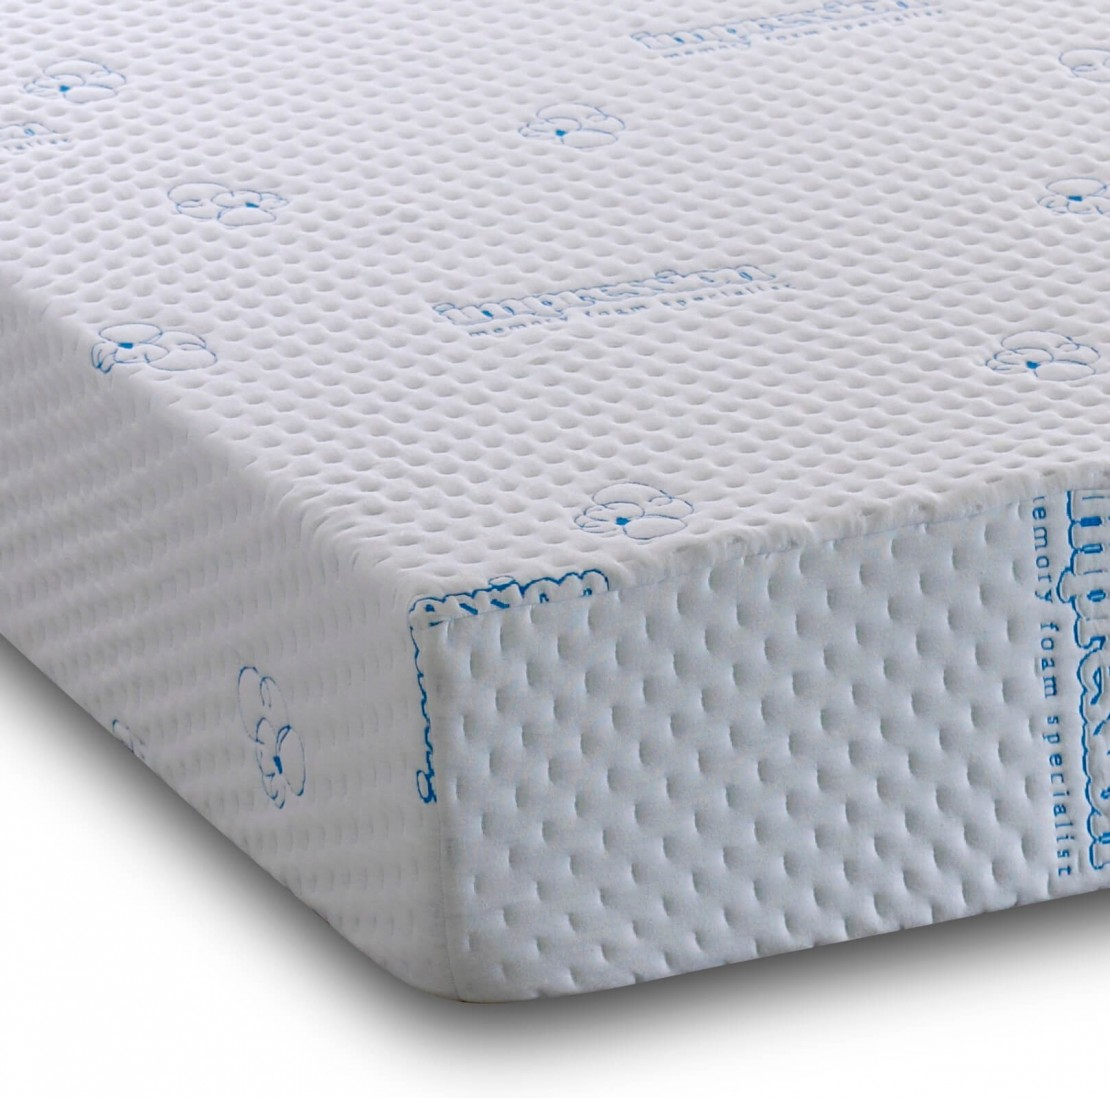 /_images/product-photos/visco-therapy-visco-1000-hd-memory-foam-firm-mattress-a.jpg